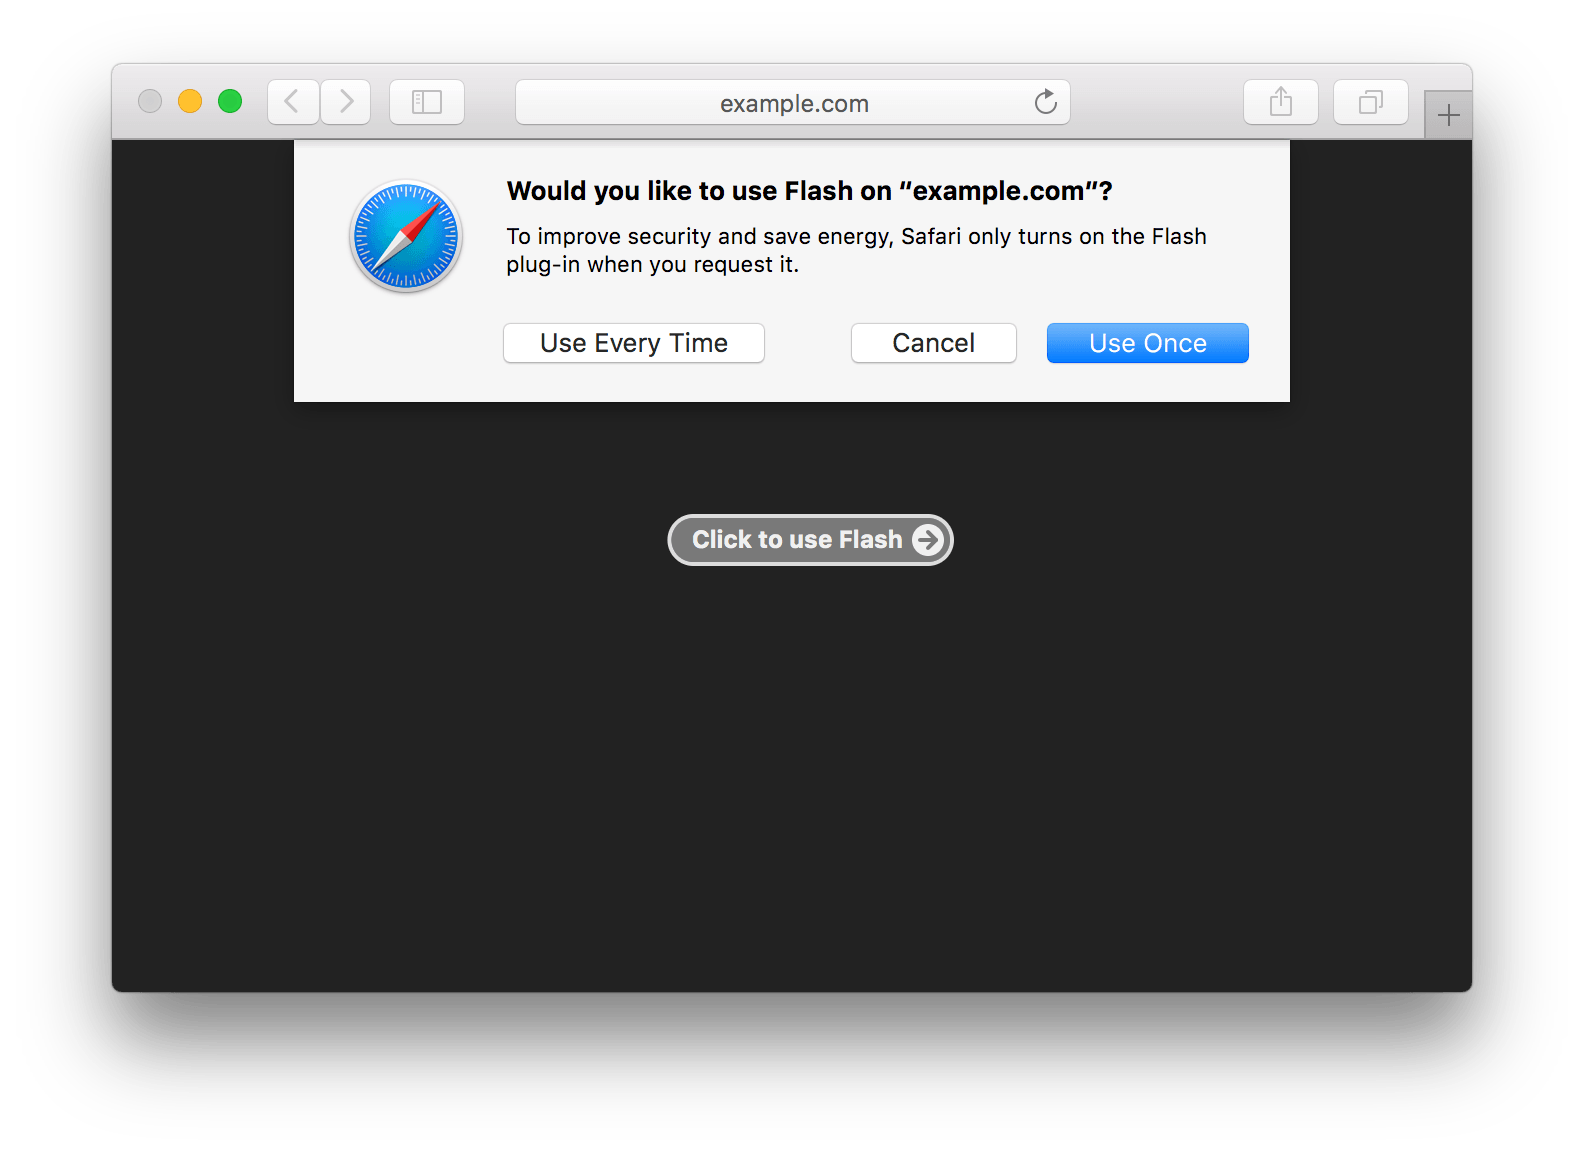 Safari 10 to turn off Flash by default